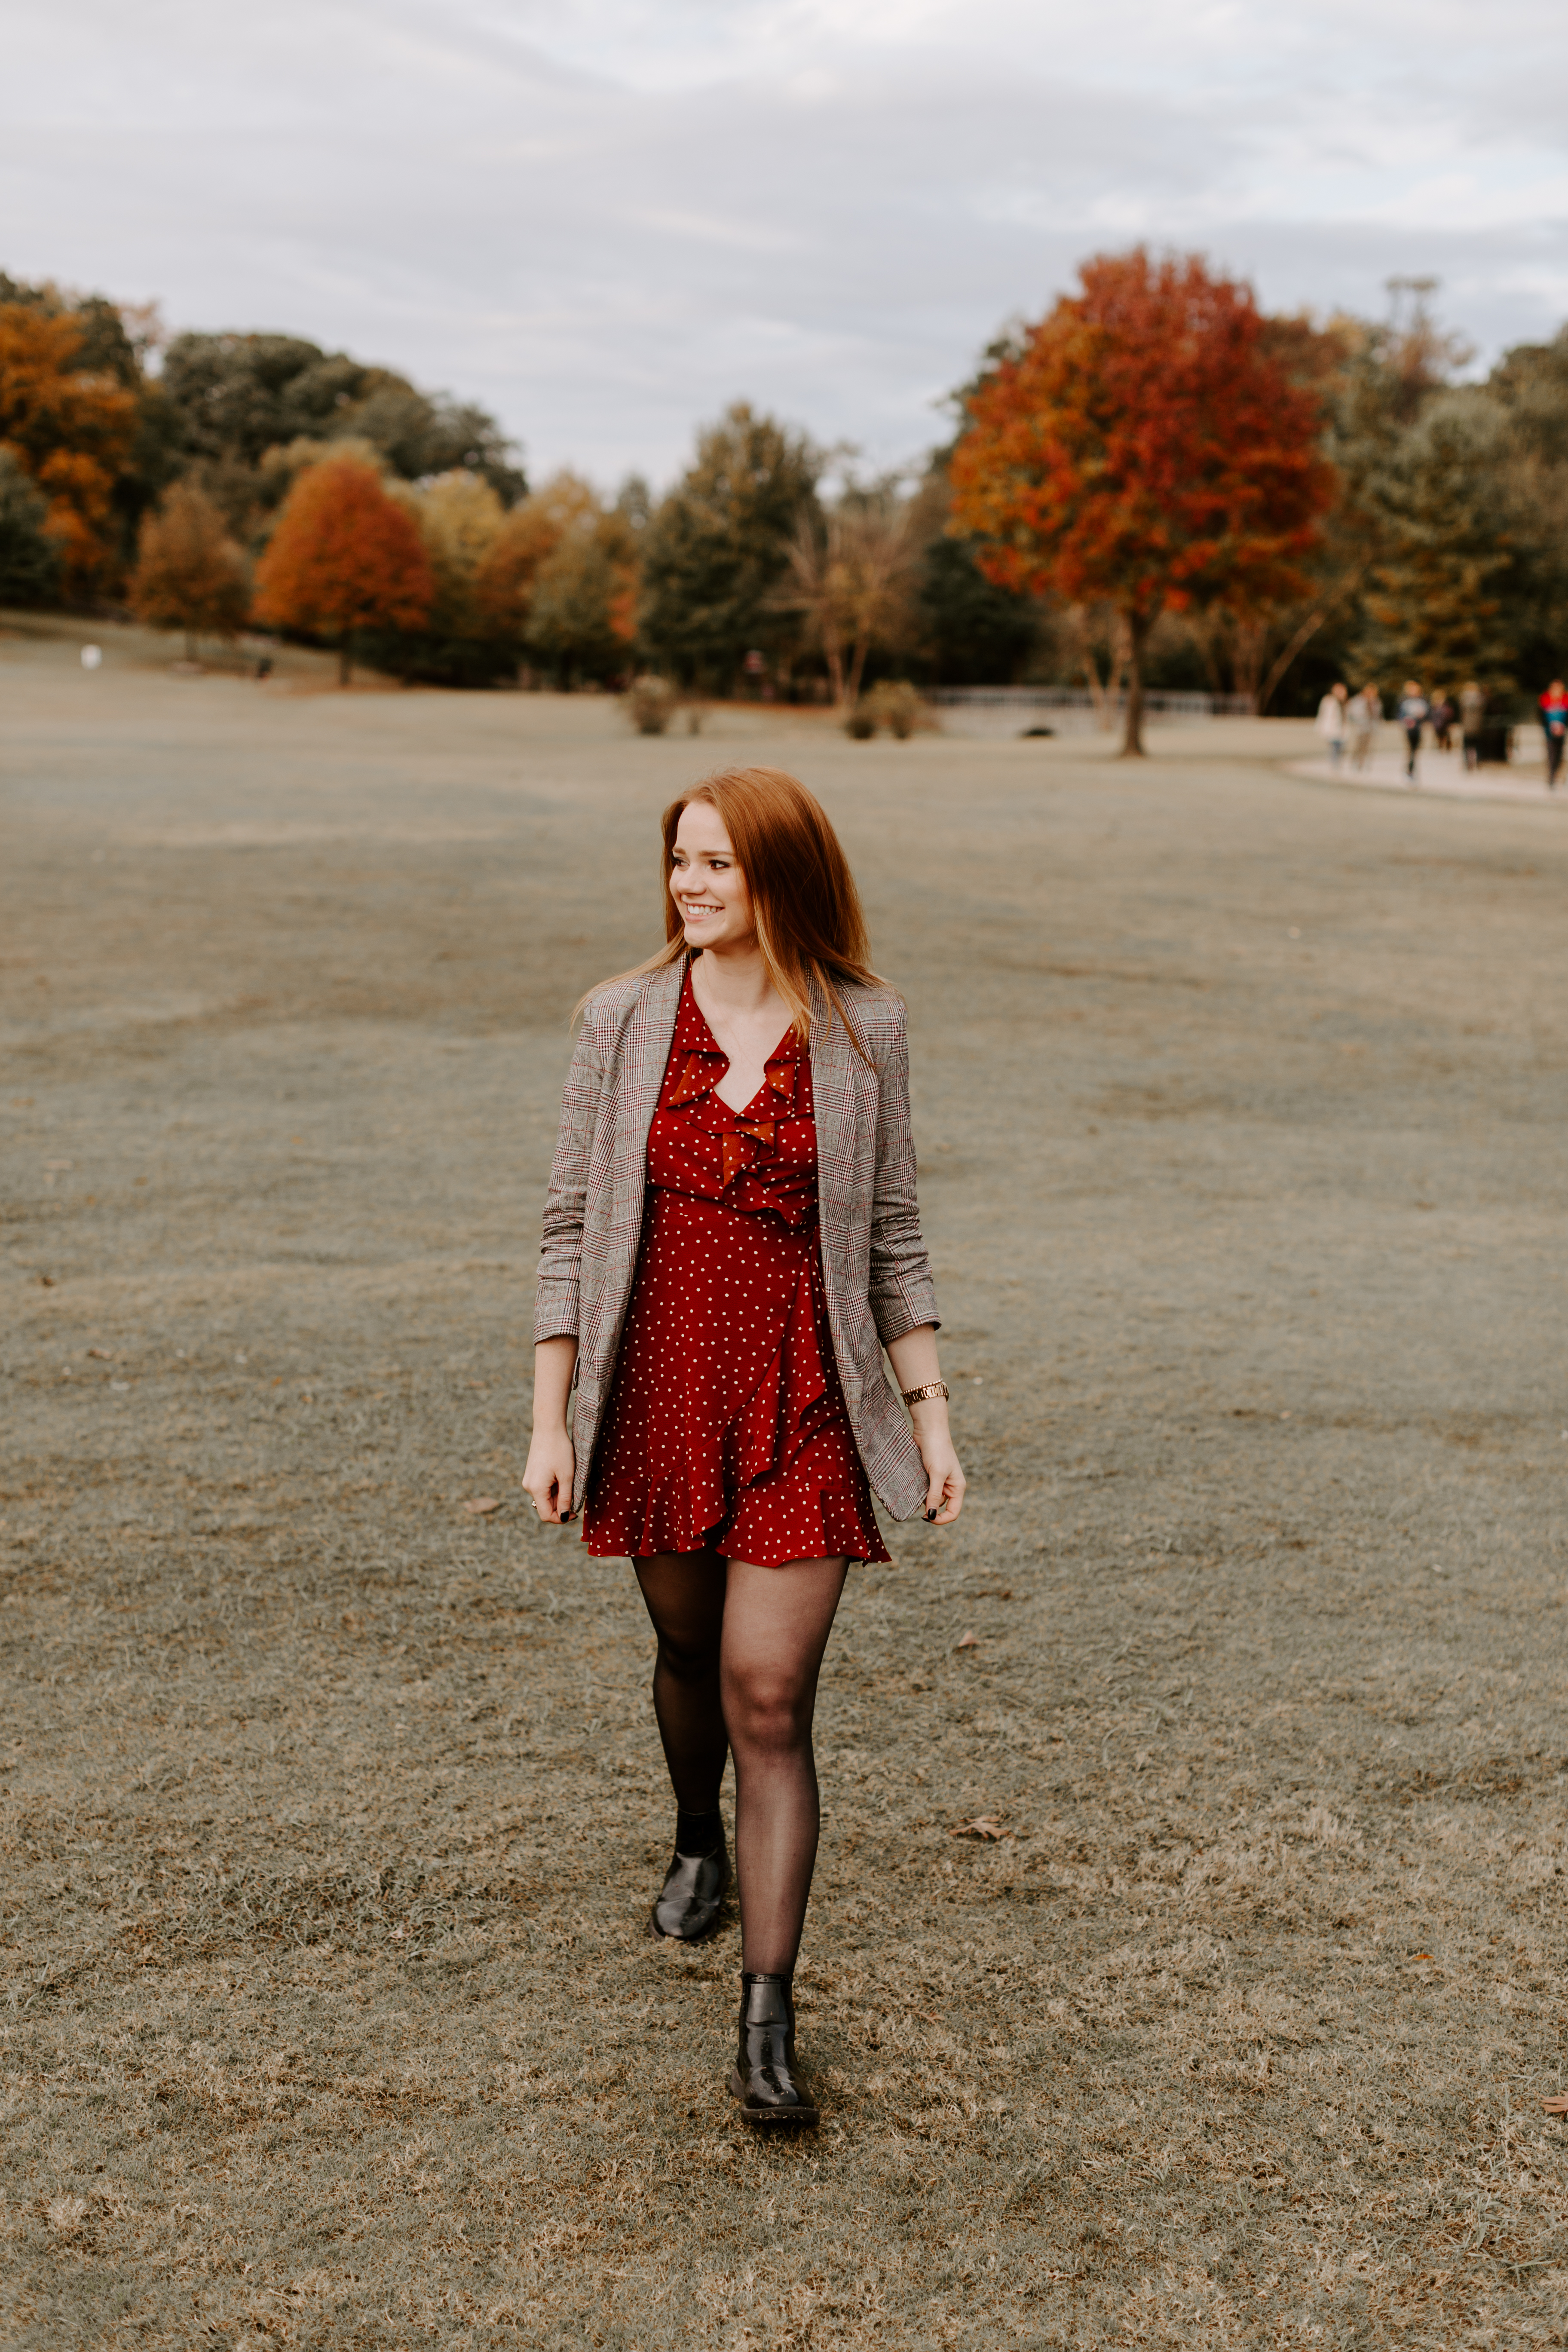 Larla H. Piedmont Park open field fall colors golden hour magazine lifestyle fashion candid pose red hair atlanta